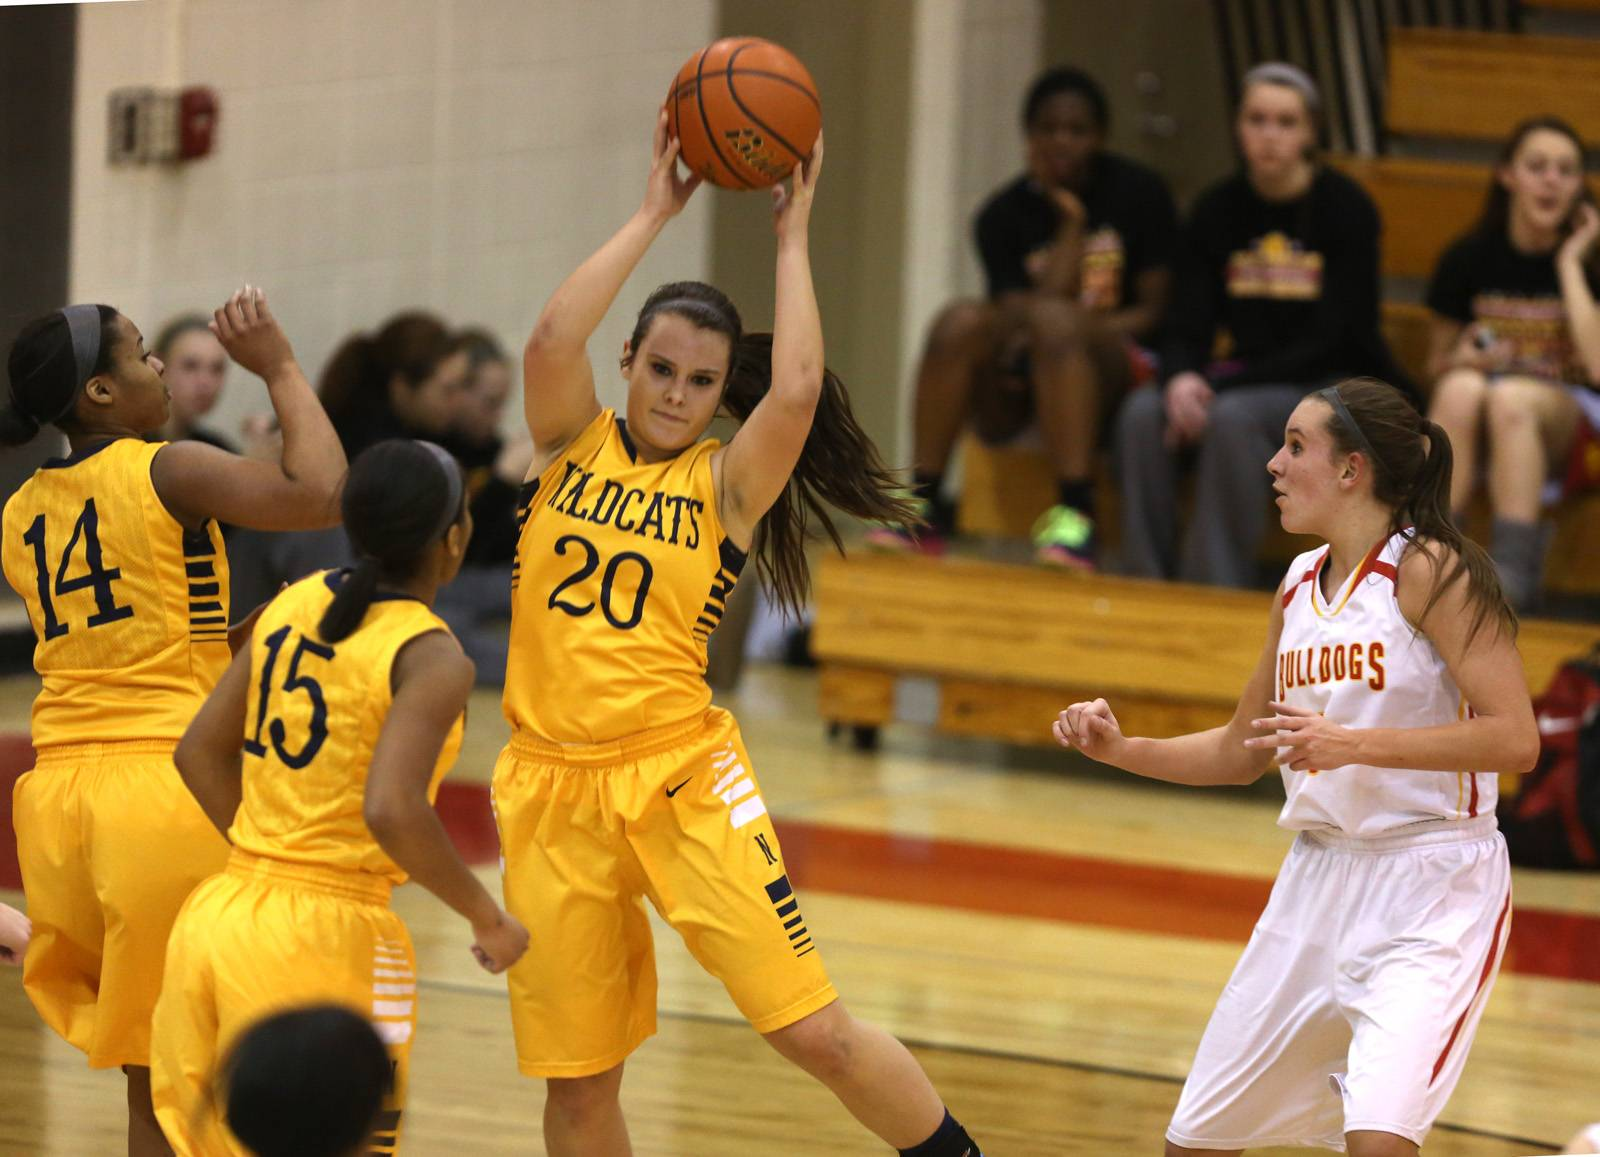 Neuqua Valley's Niki Lazar (20) grabs a rebound against Batavia, during girls basketball action Friday, in Batavia.